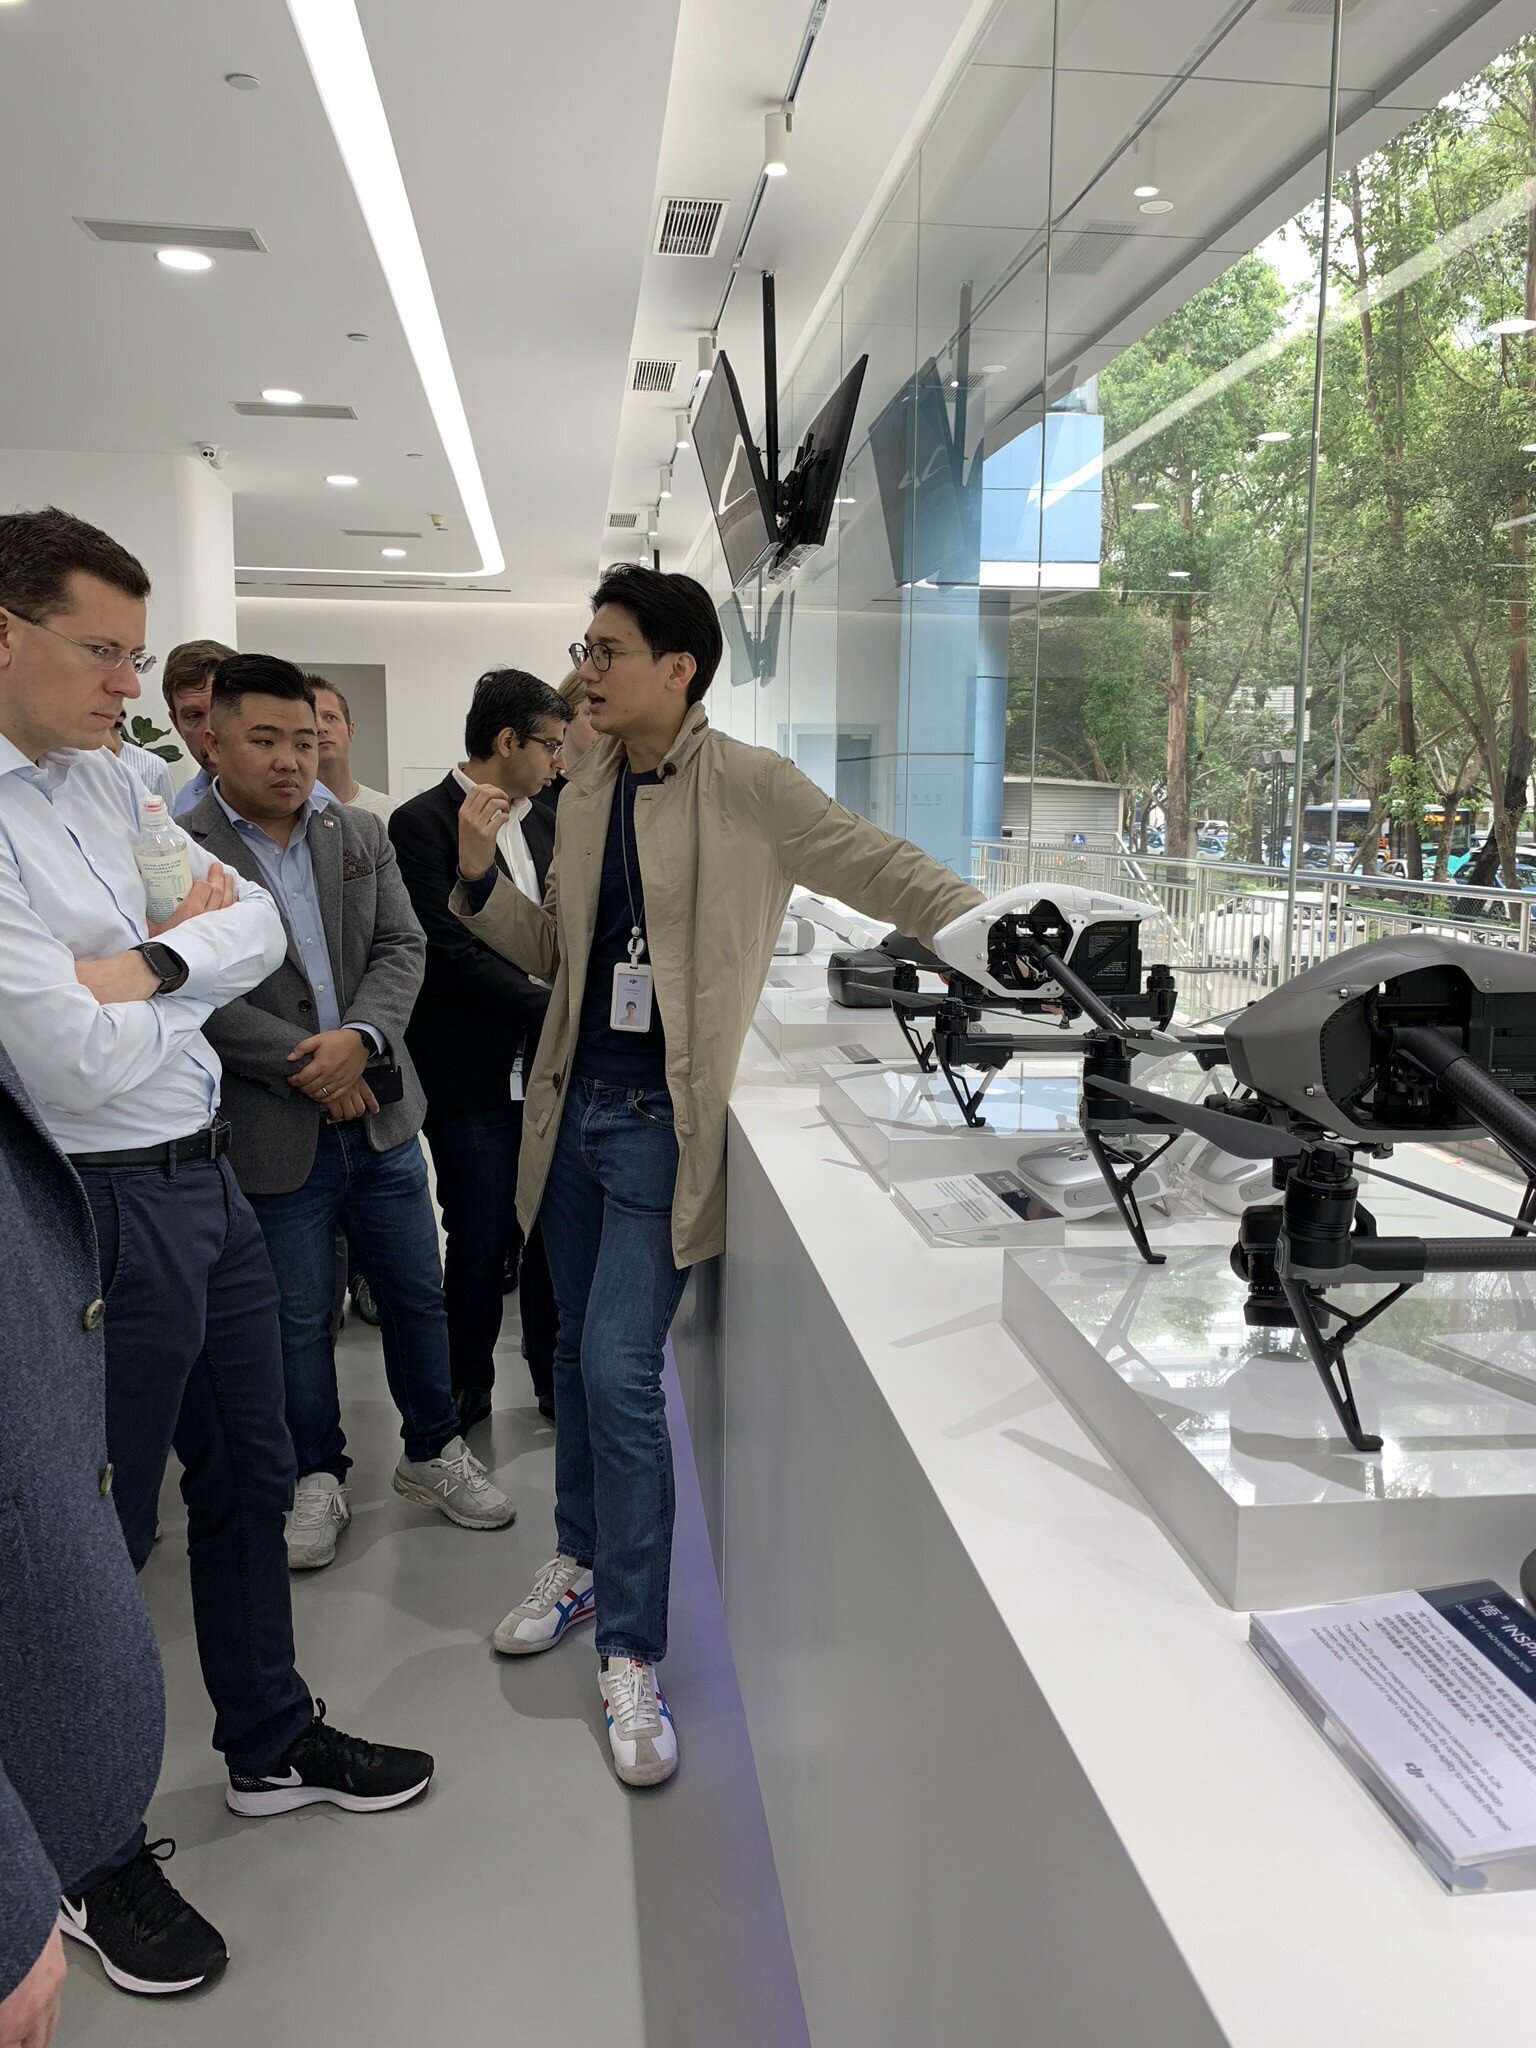 At DJI's HQ showroom. Pictured are the Inspire (non-consumer) drones.